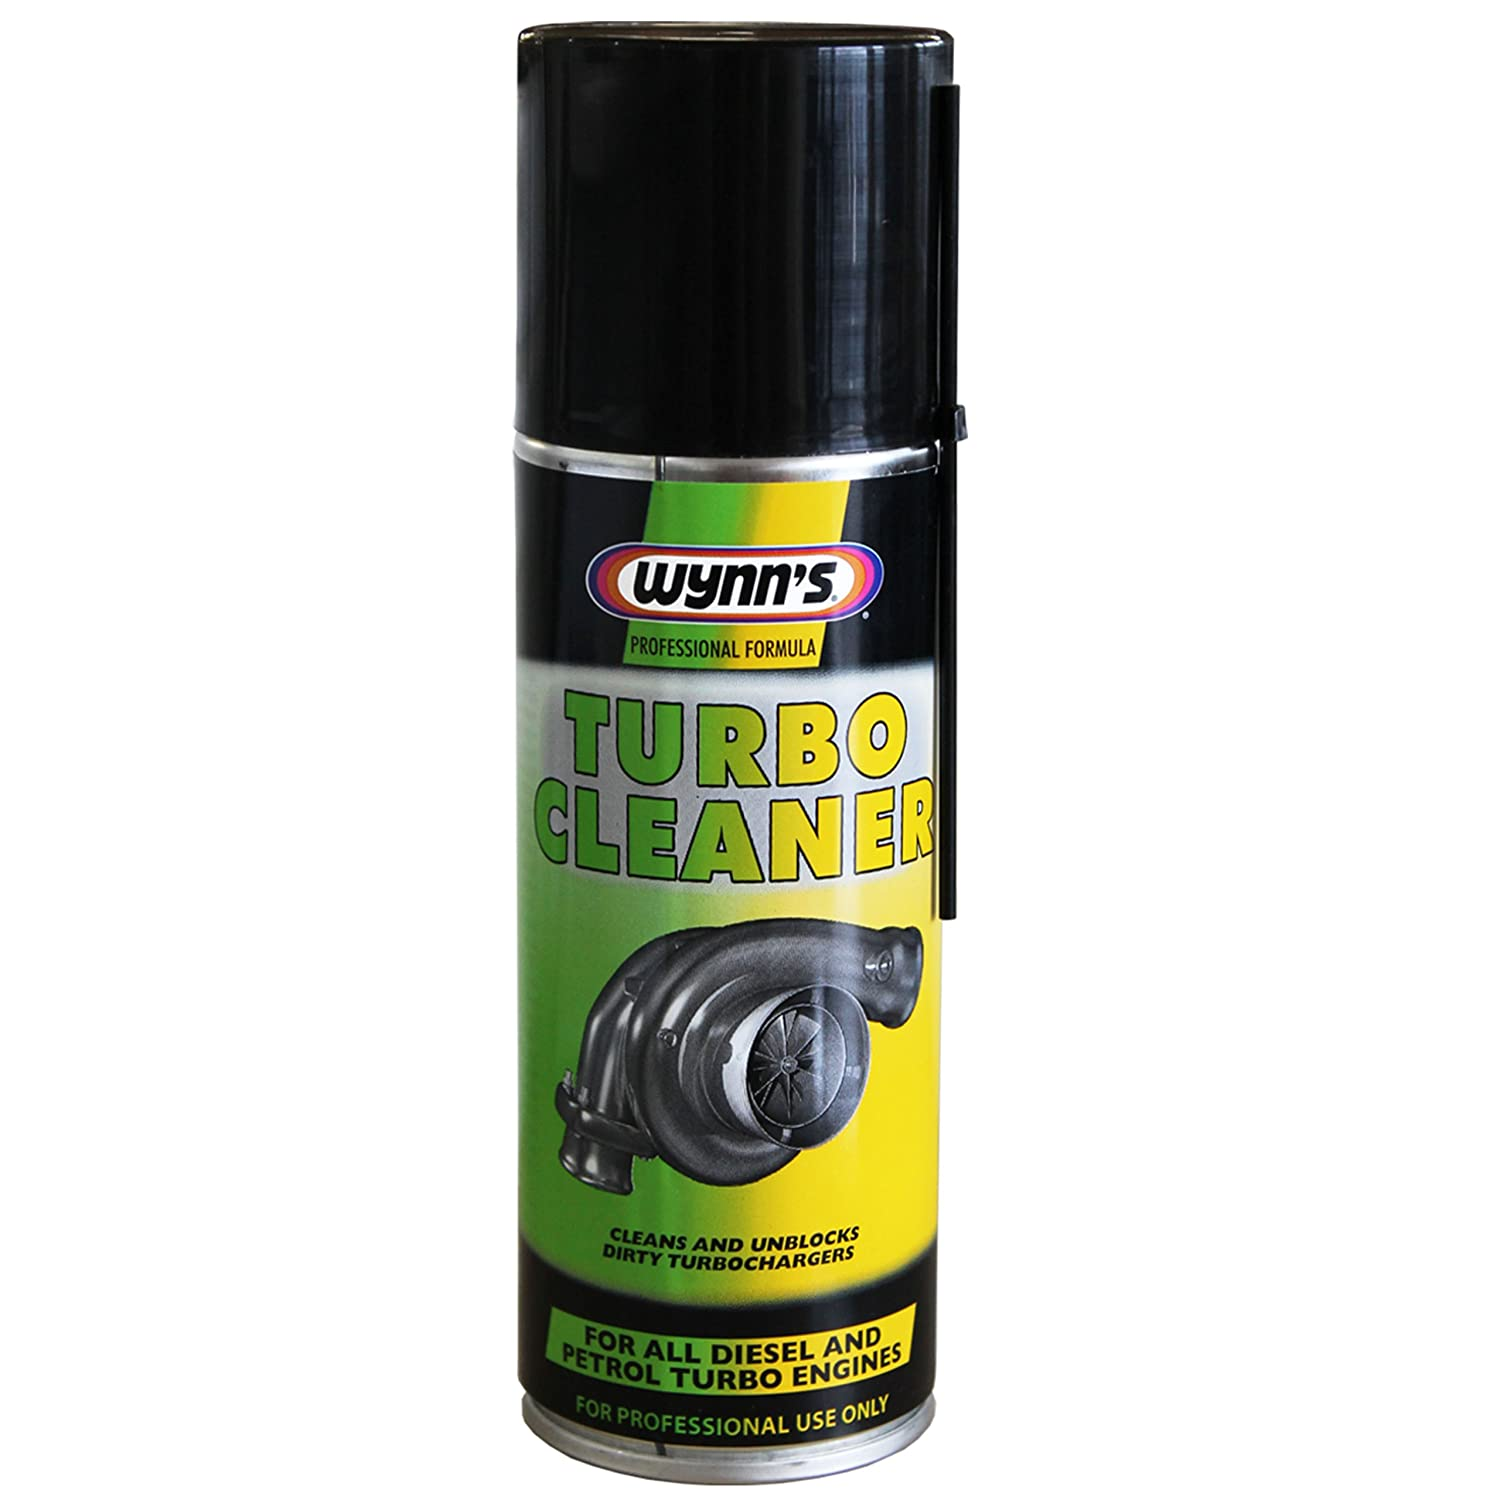 Limpiador de Turbo Wynn para la gasolina y Diesel turbocompresores 200ml Aerosol Wynns 28679: Amazon.es: Coche y moto